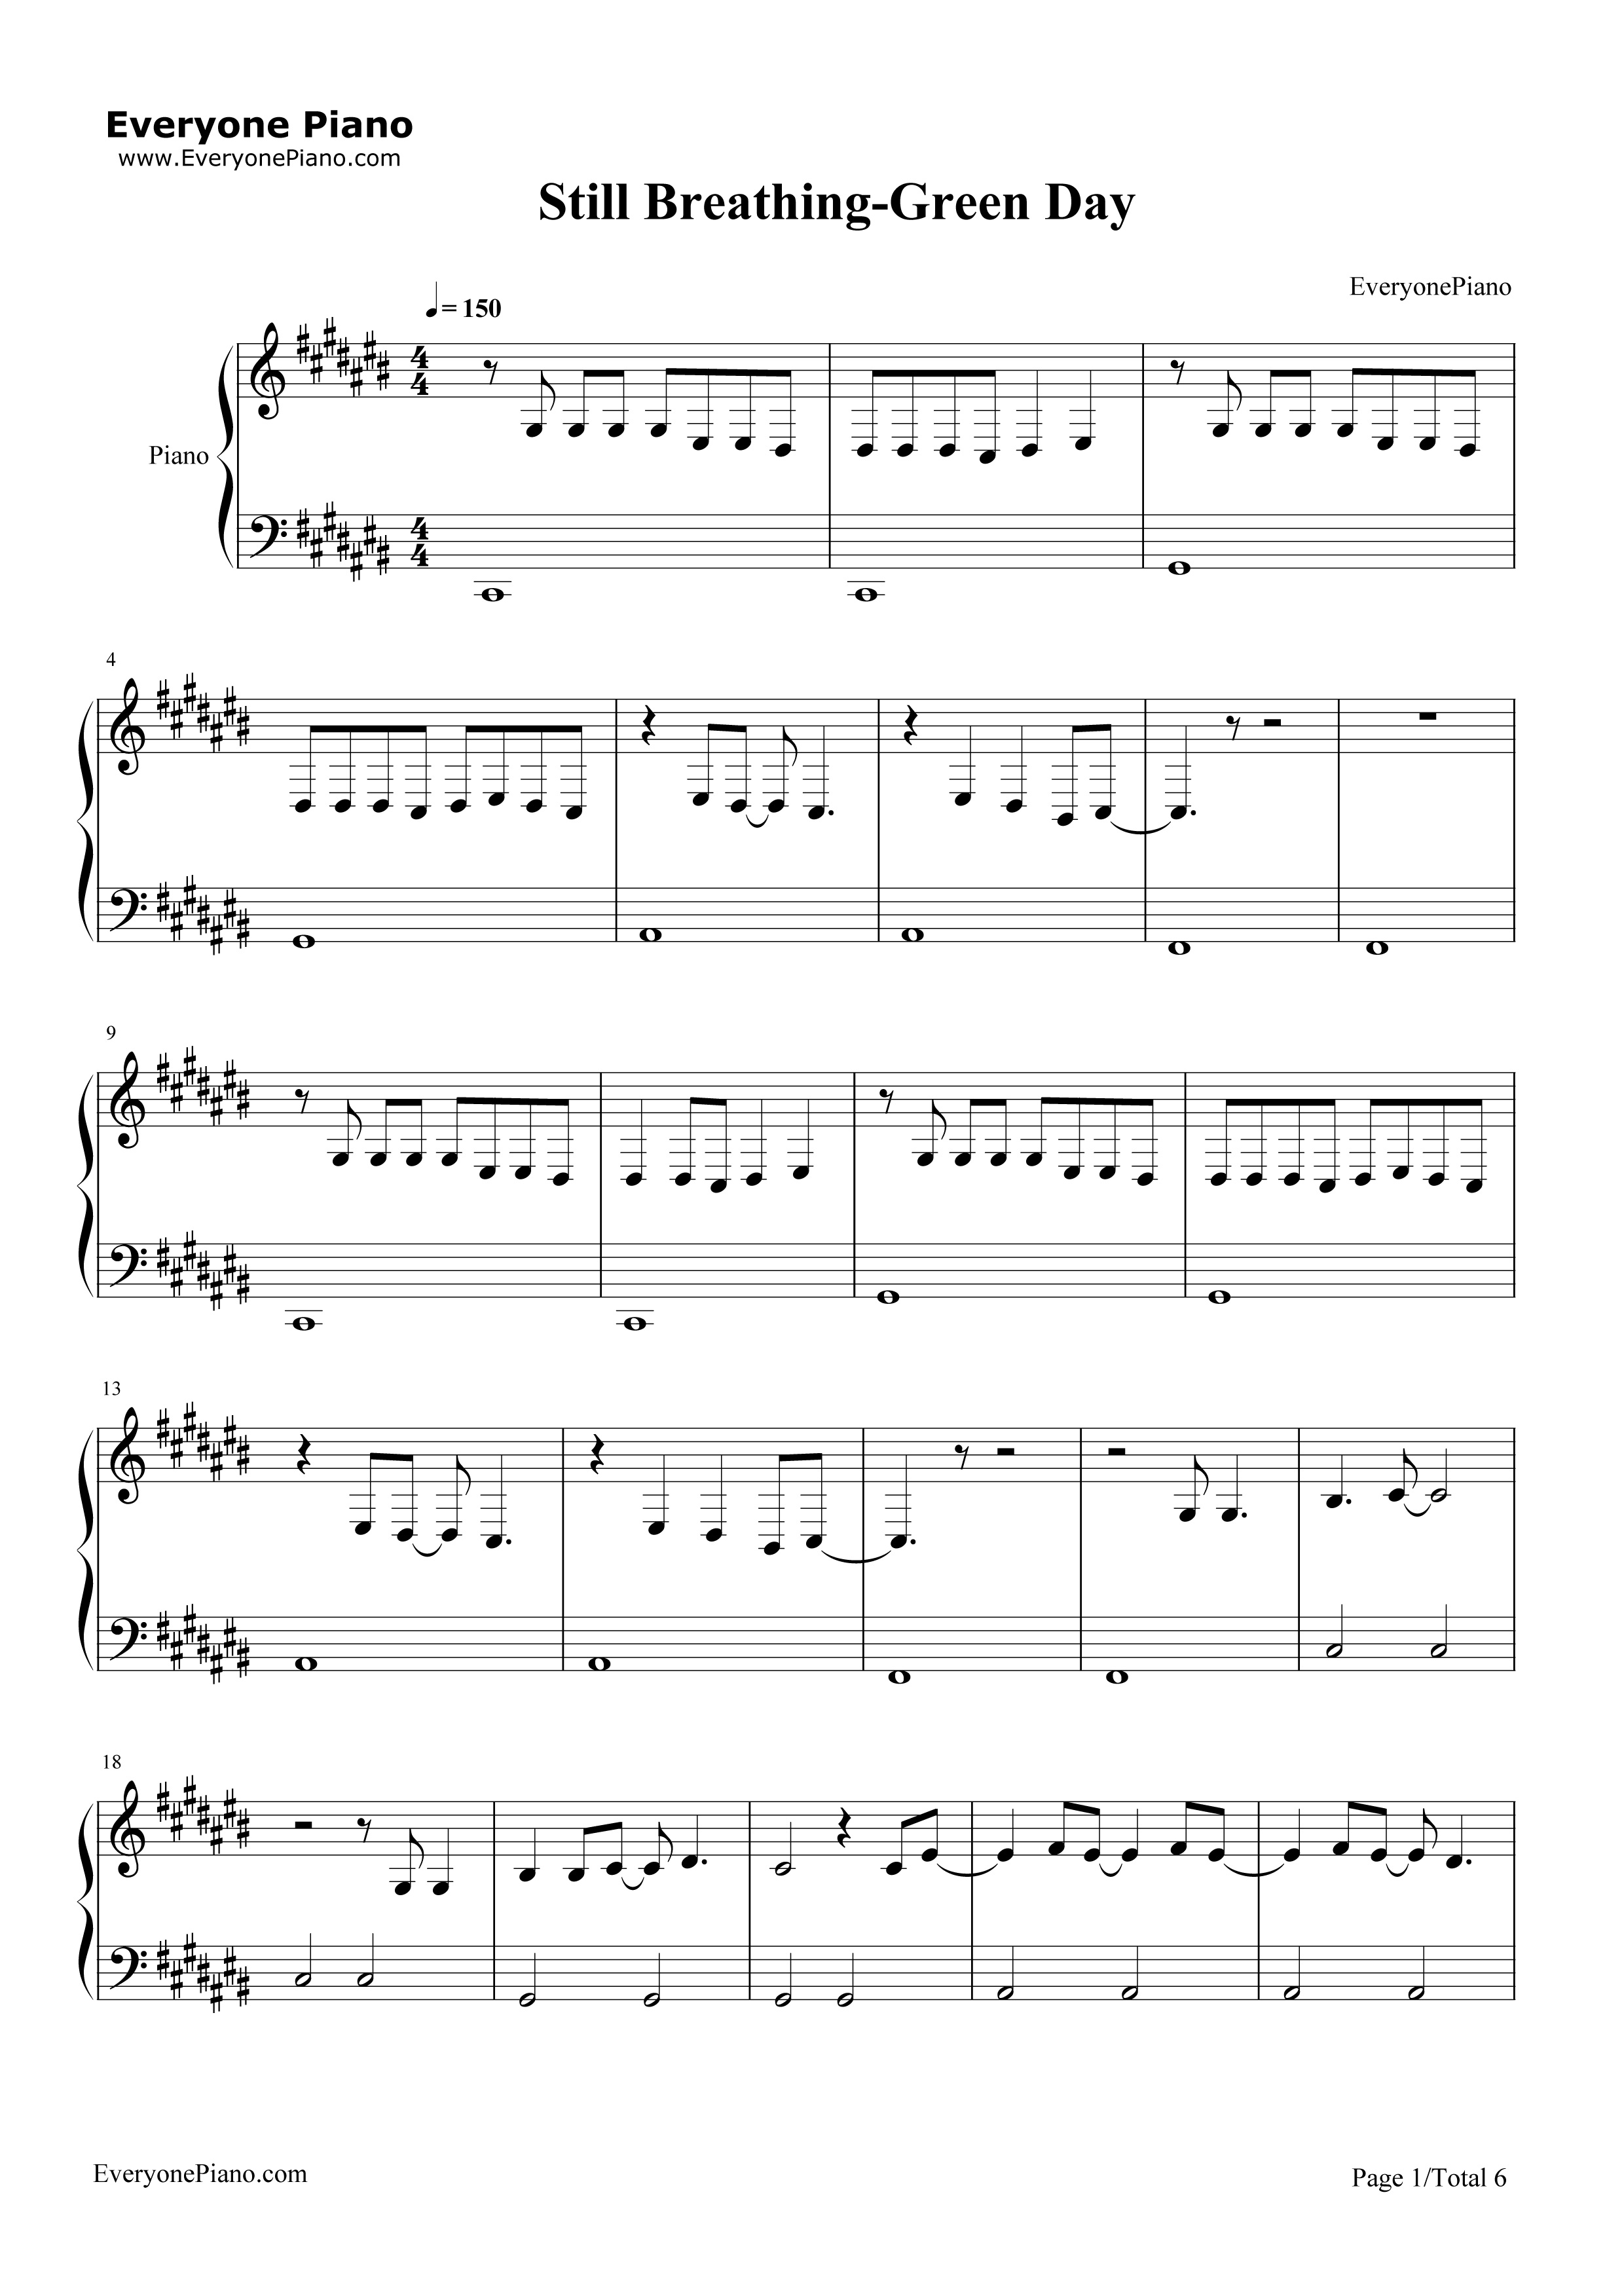 Still breathing green day stave preview 1 free piano sheet music listen now print sheet still breathing green day stave preview 1 hexwebz Image collections